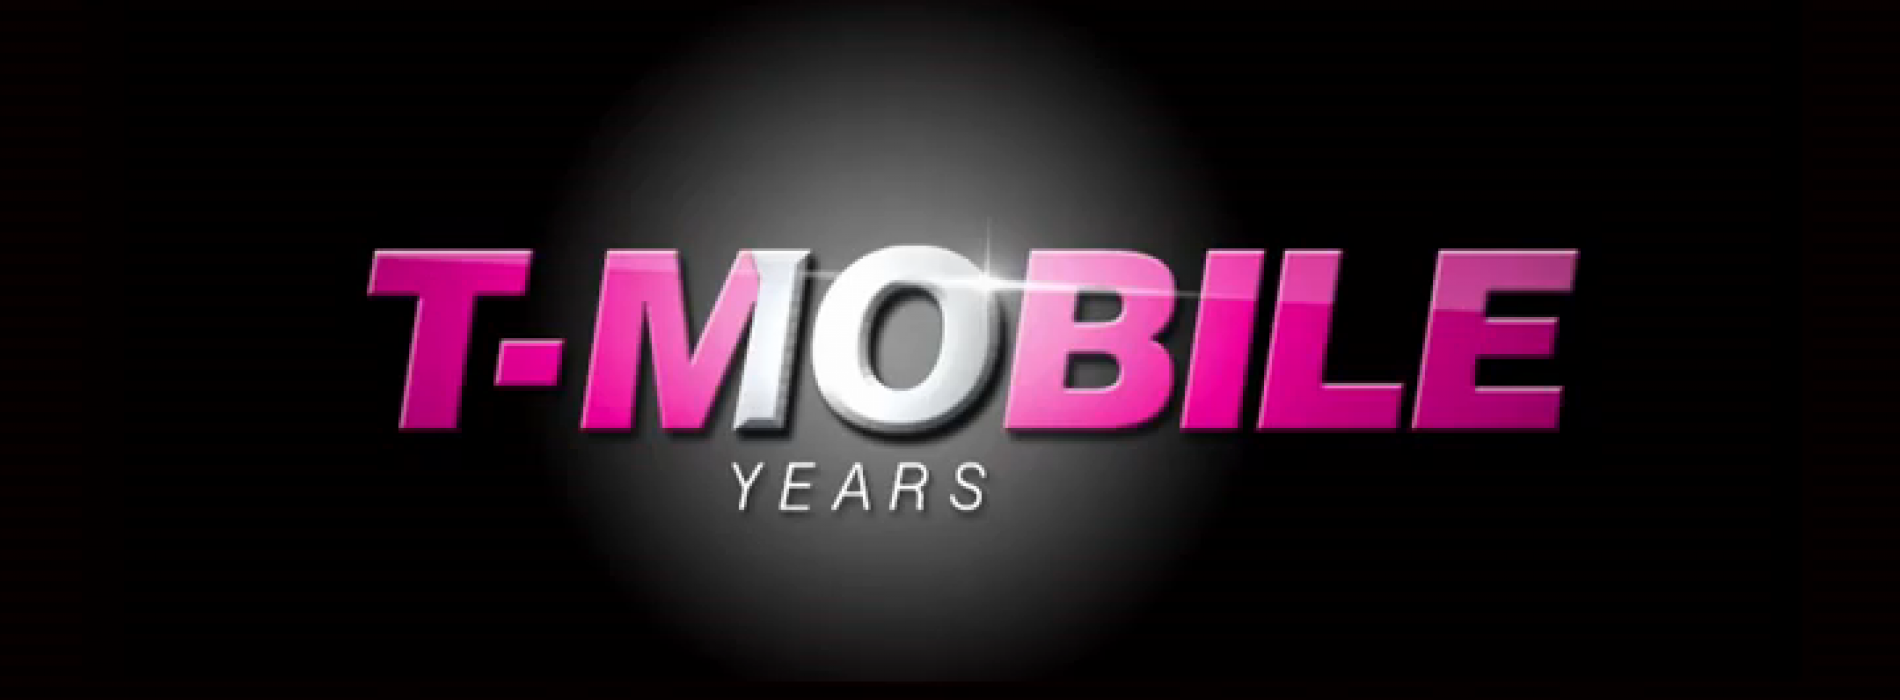 T-Mobile also schedules an October 29 event